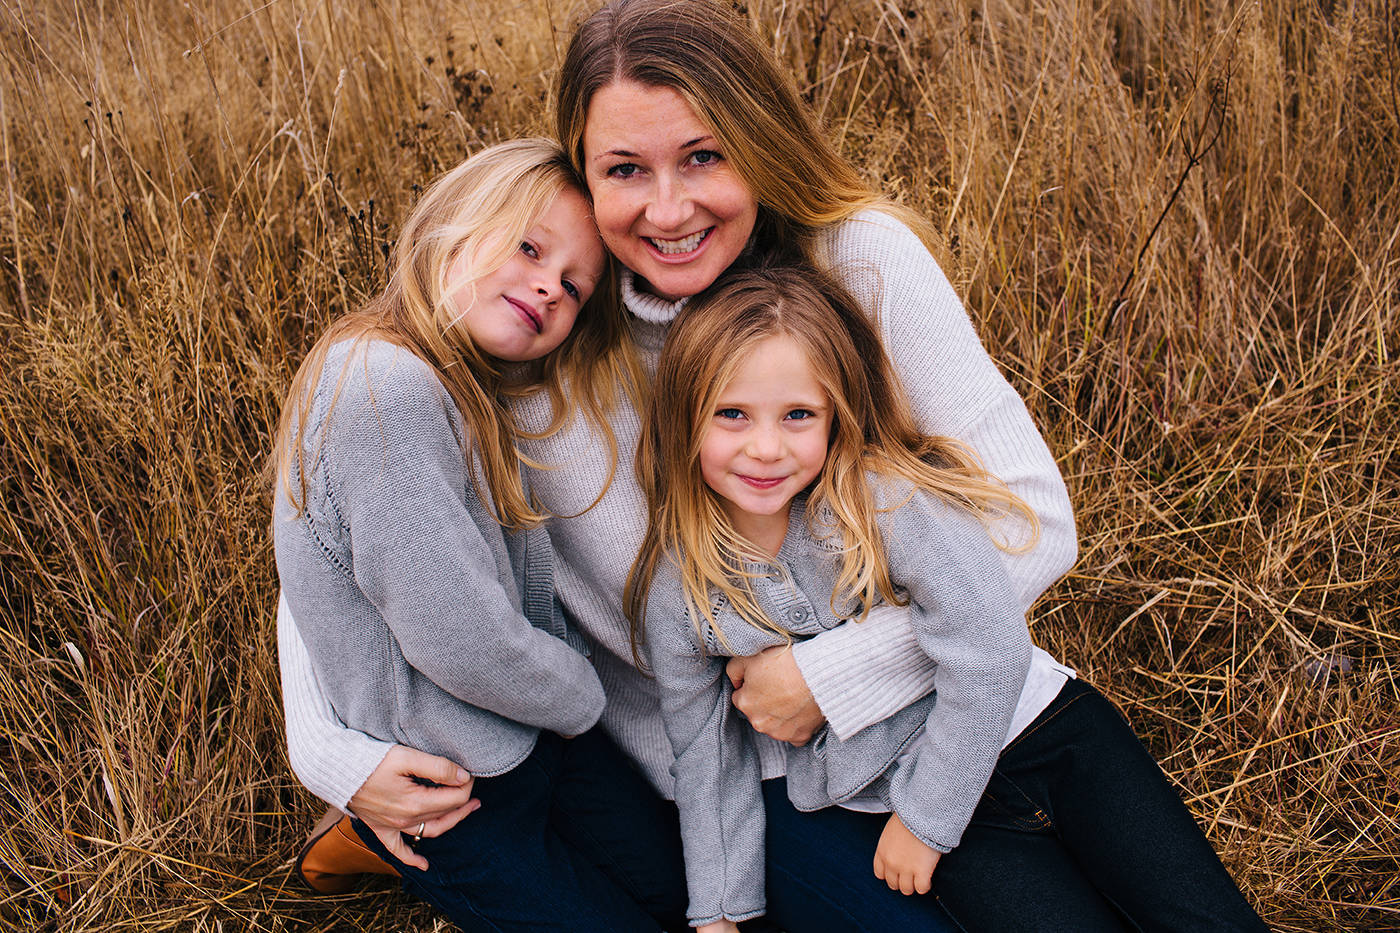 Sarah Cotton with her daughters Chloe (left) and Aubrey (right) taken in October 2017. (Photo Ryan MacDonald Photography)